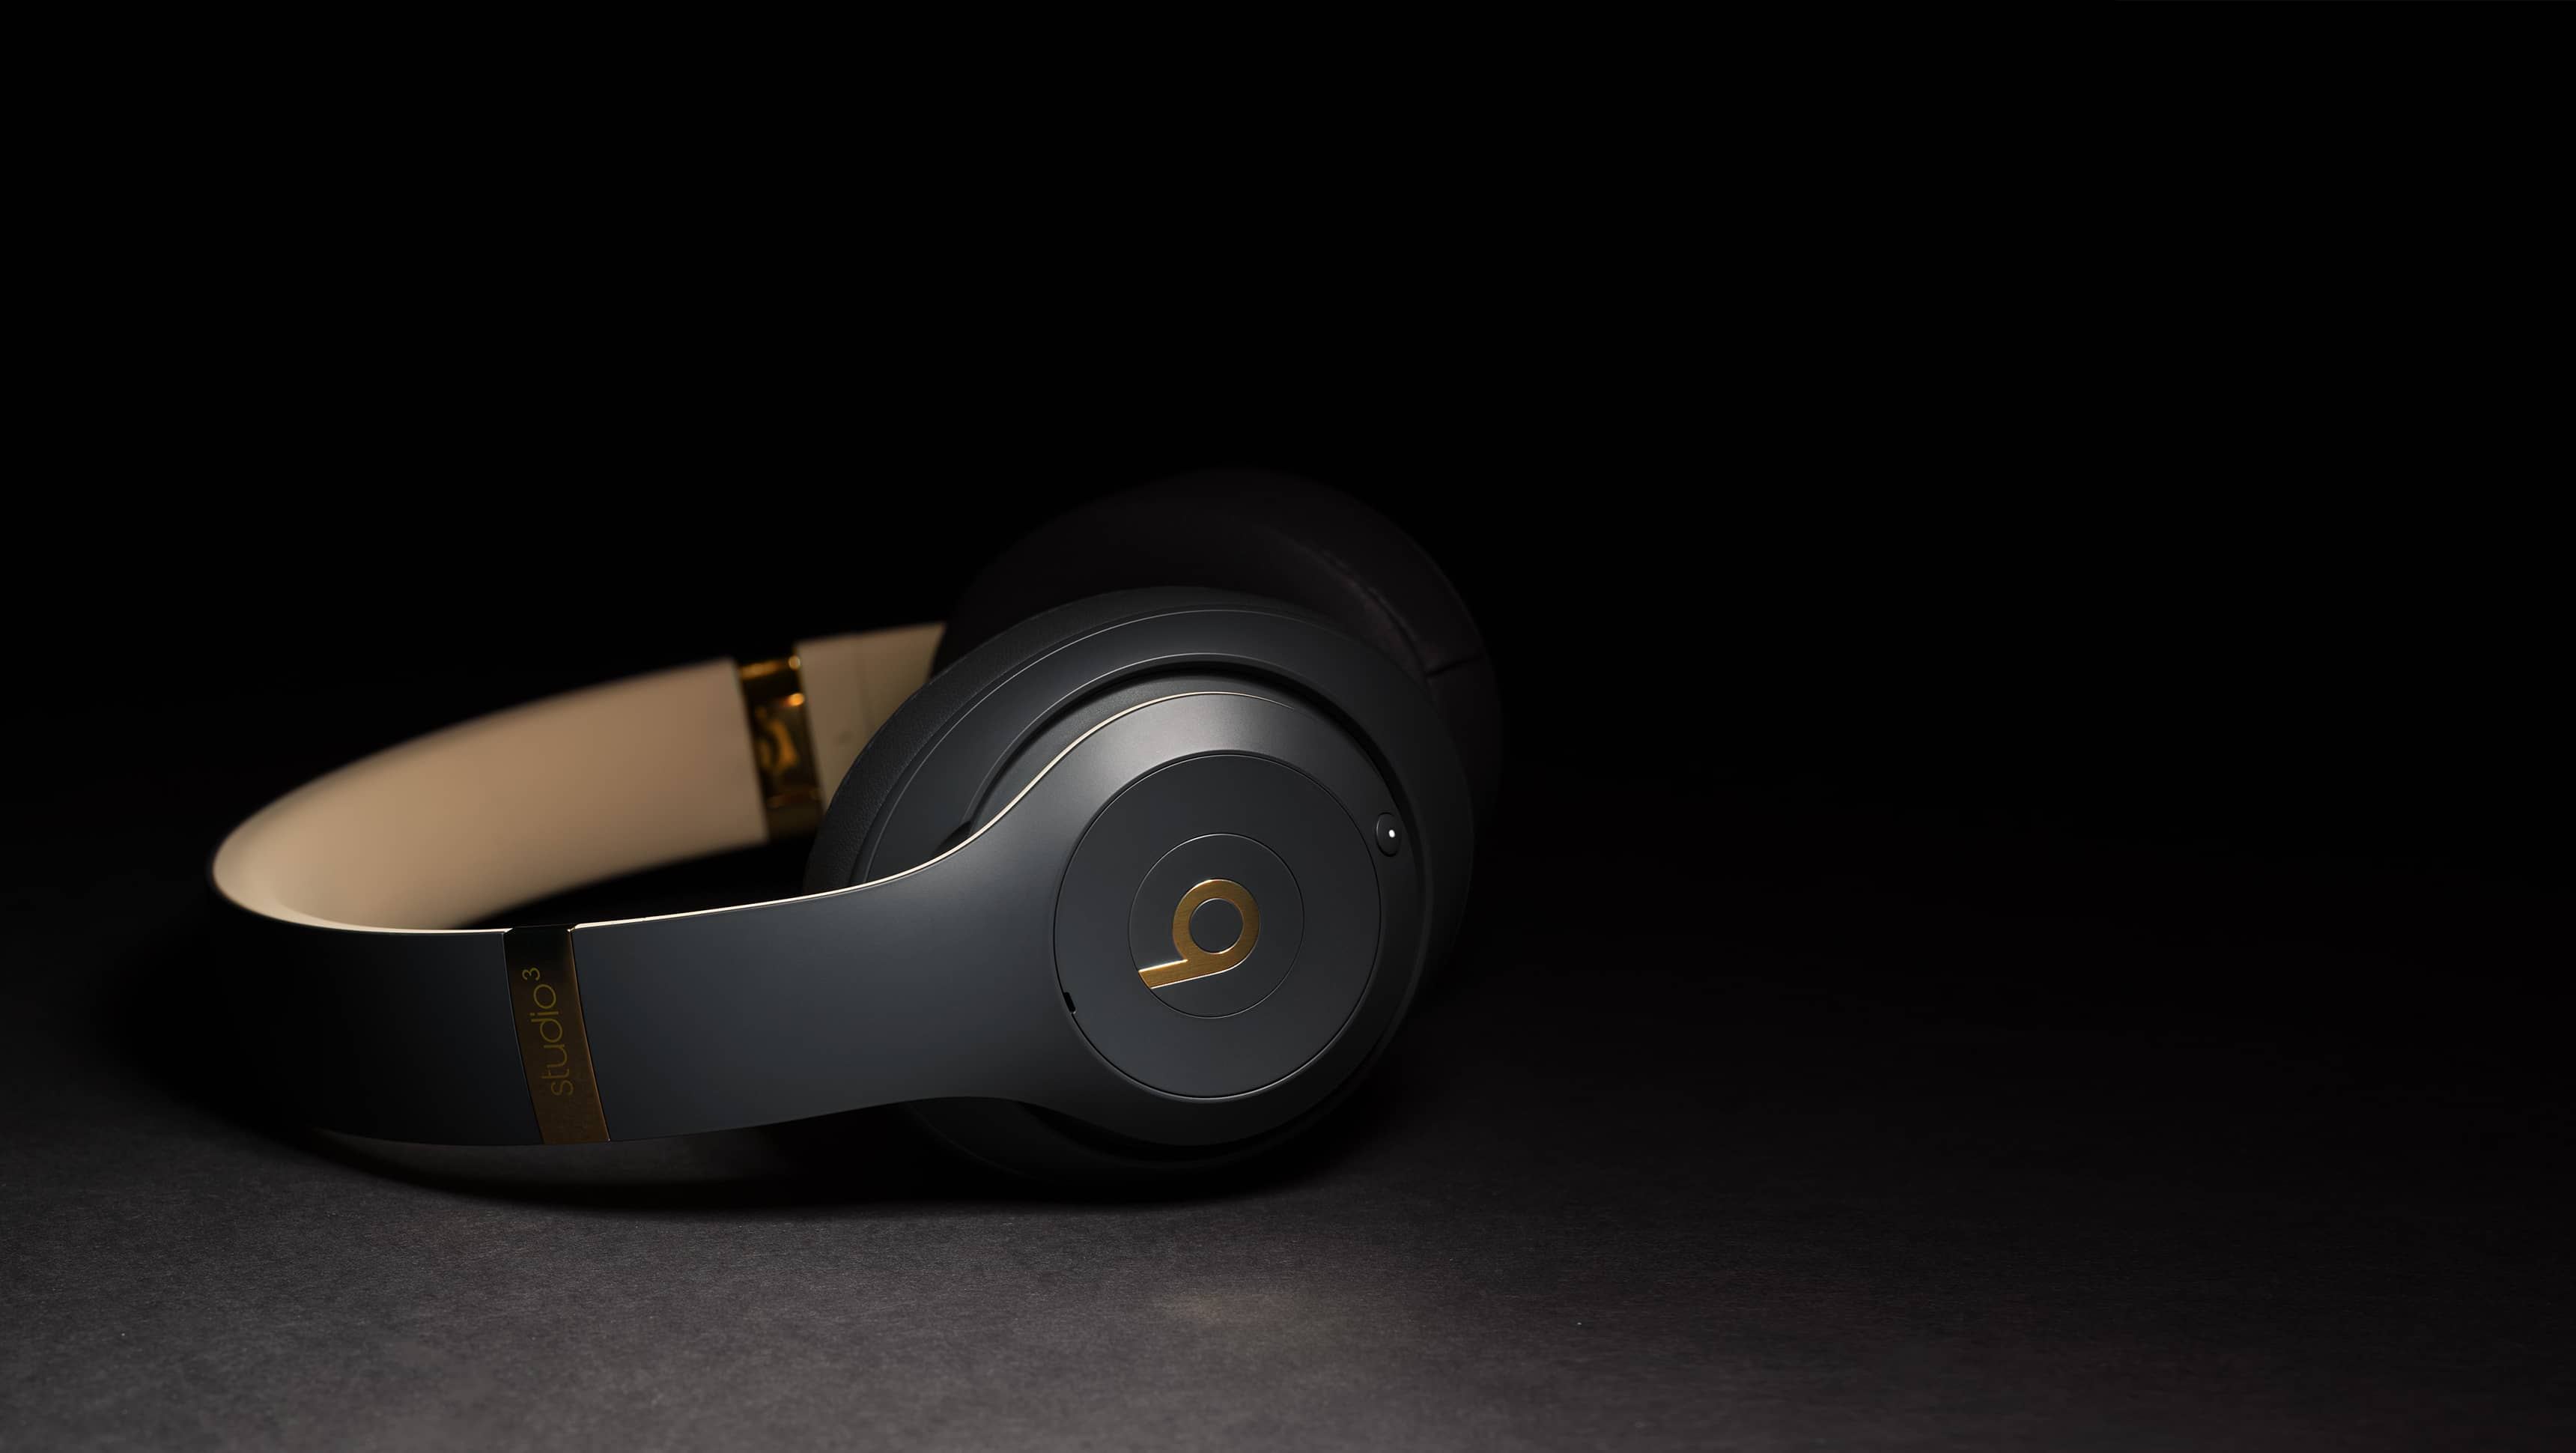 https://www.beatsbydre.com/content/dam/beats/web/pdp/studio_3_wireless/hero/443_HERO_PDP_3440X1440.jpg